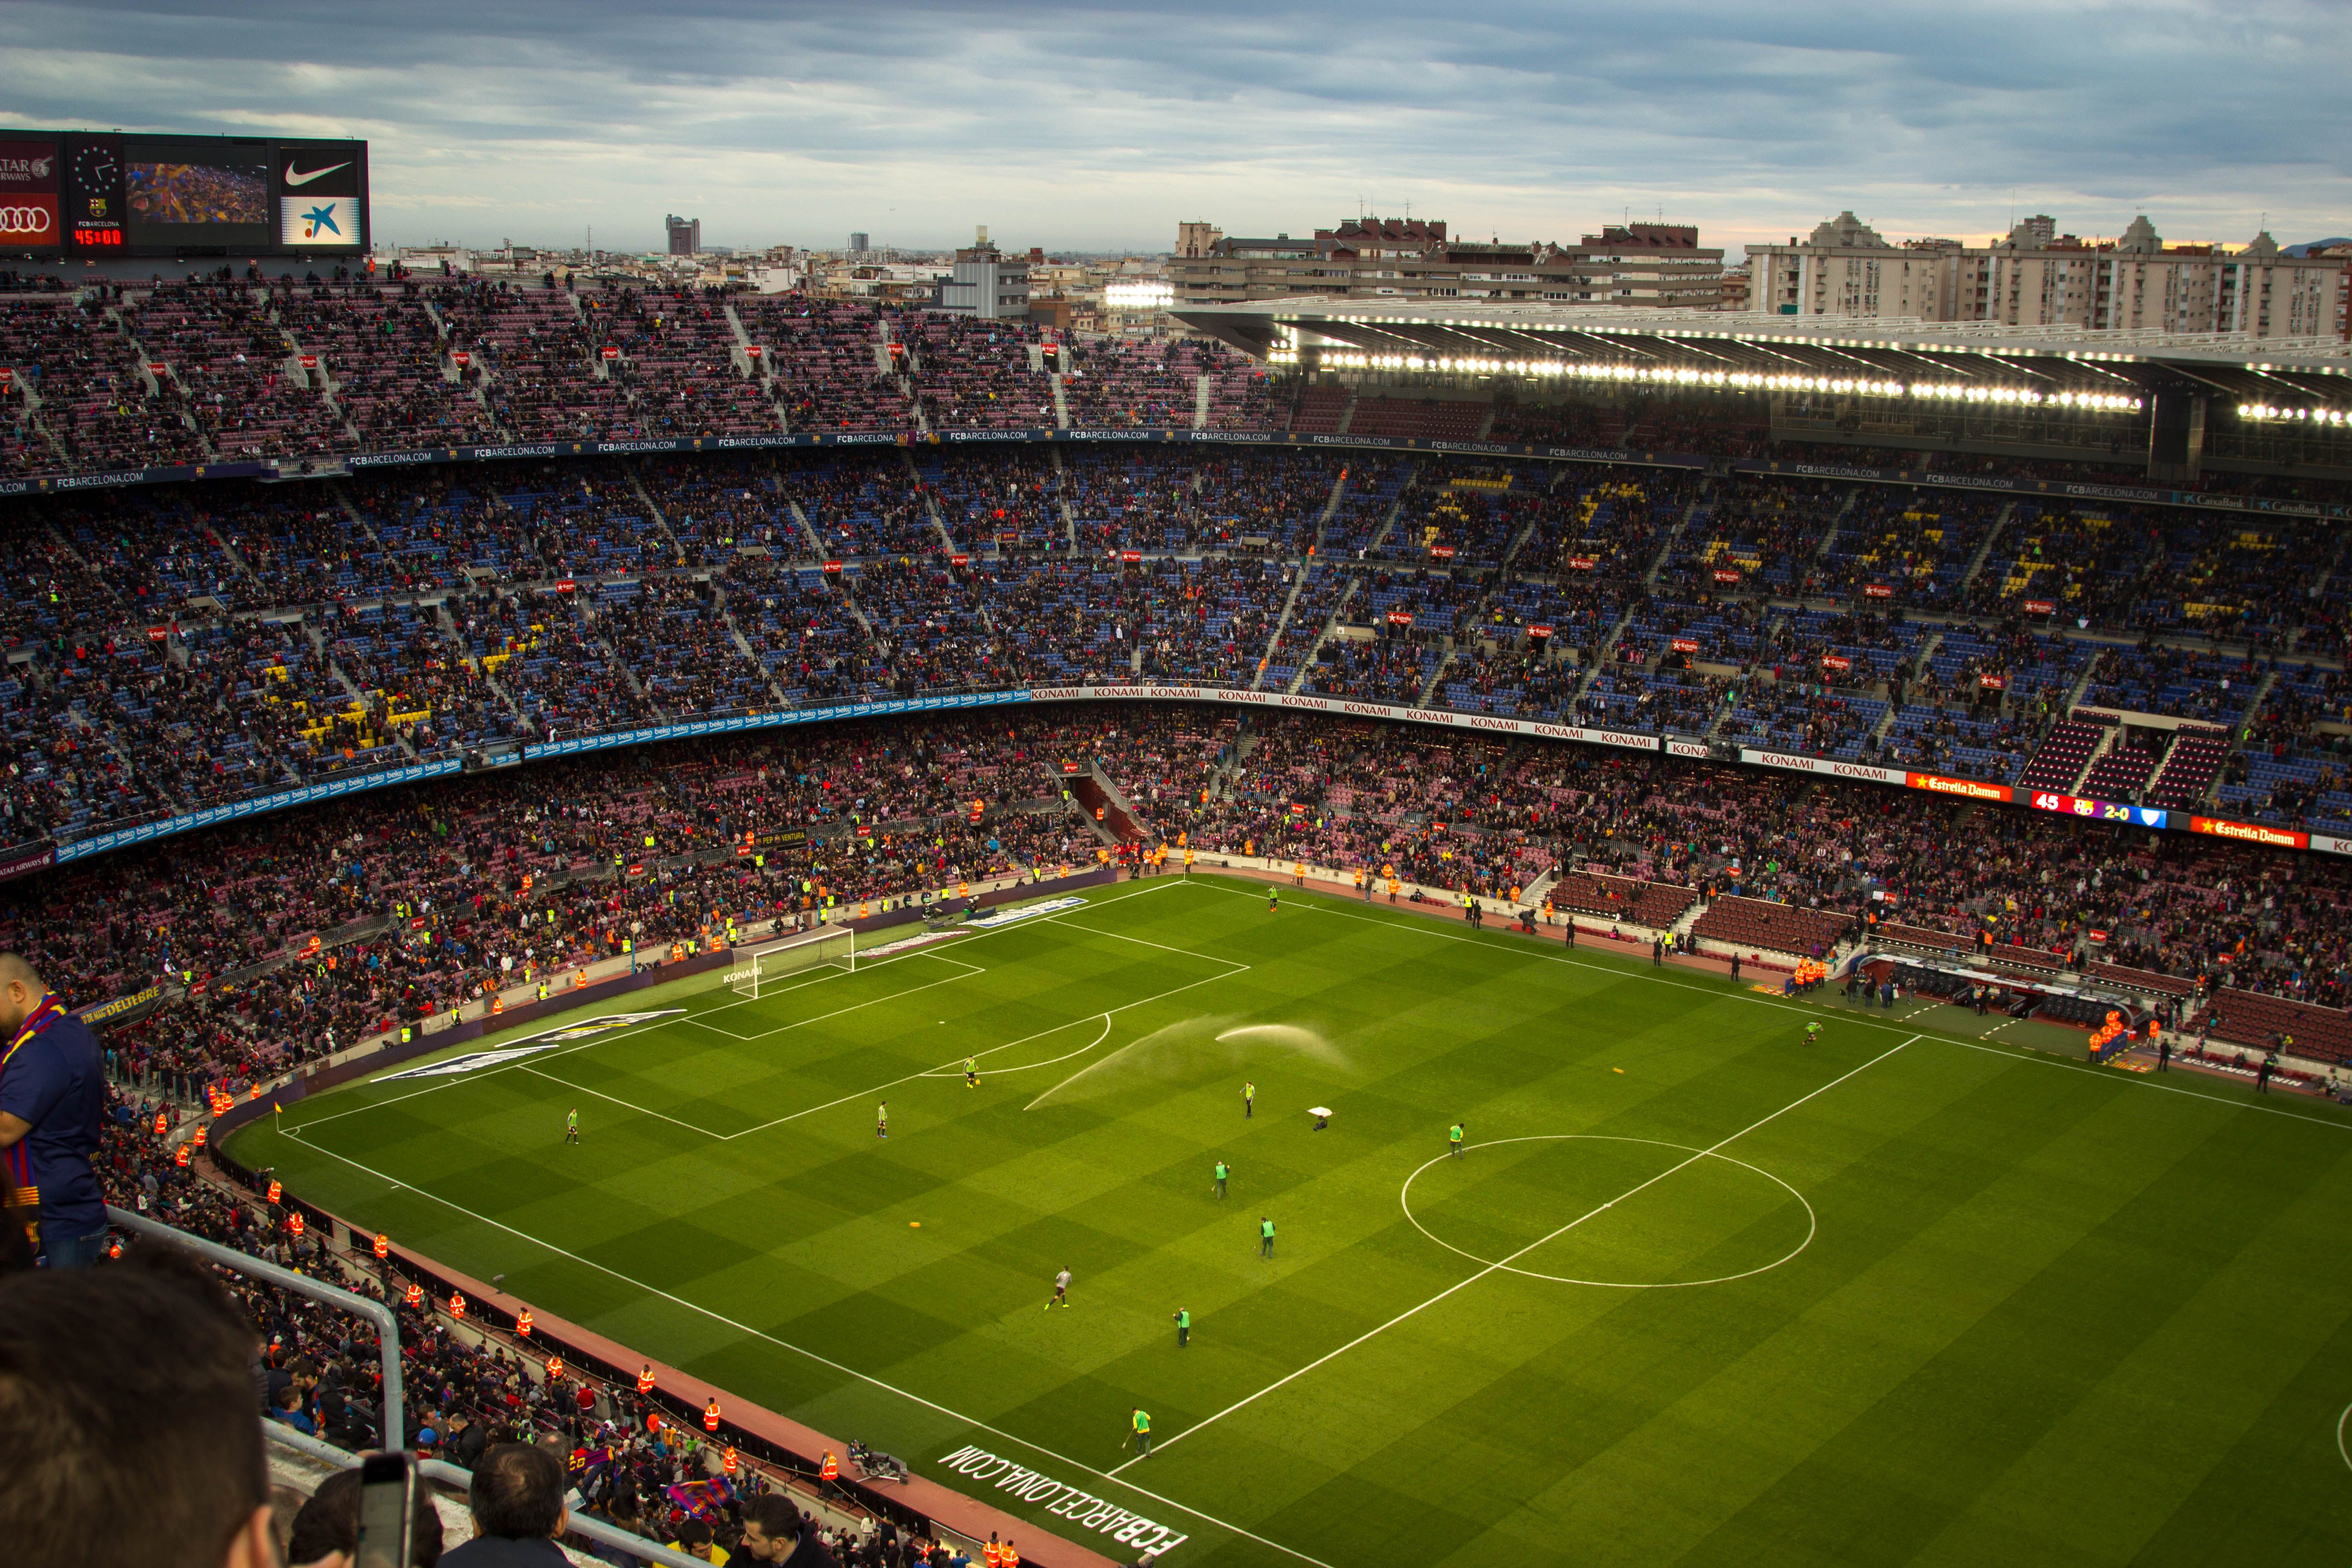 1e3a51727 Watch FC Barcelona Play at Camp Nou: A Visitor's Guide | Spain trip ...